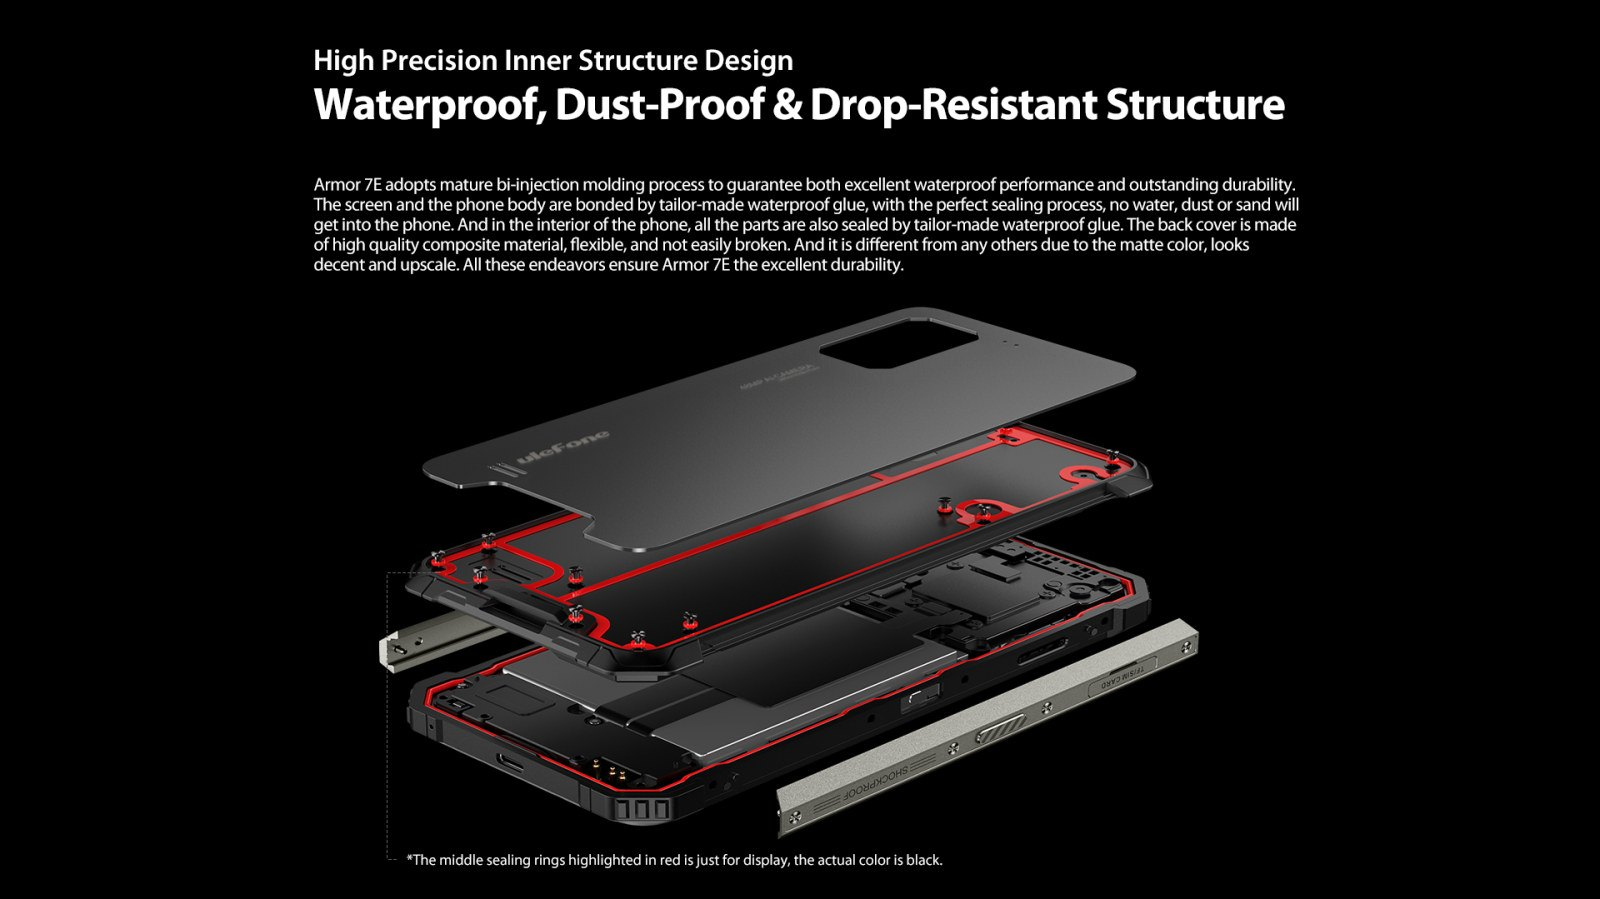 rugged water proof dust proof design